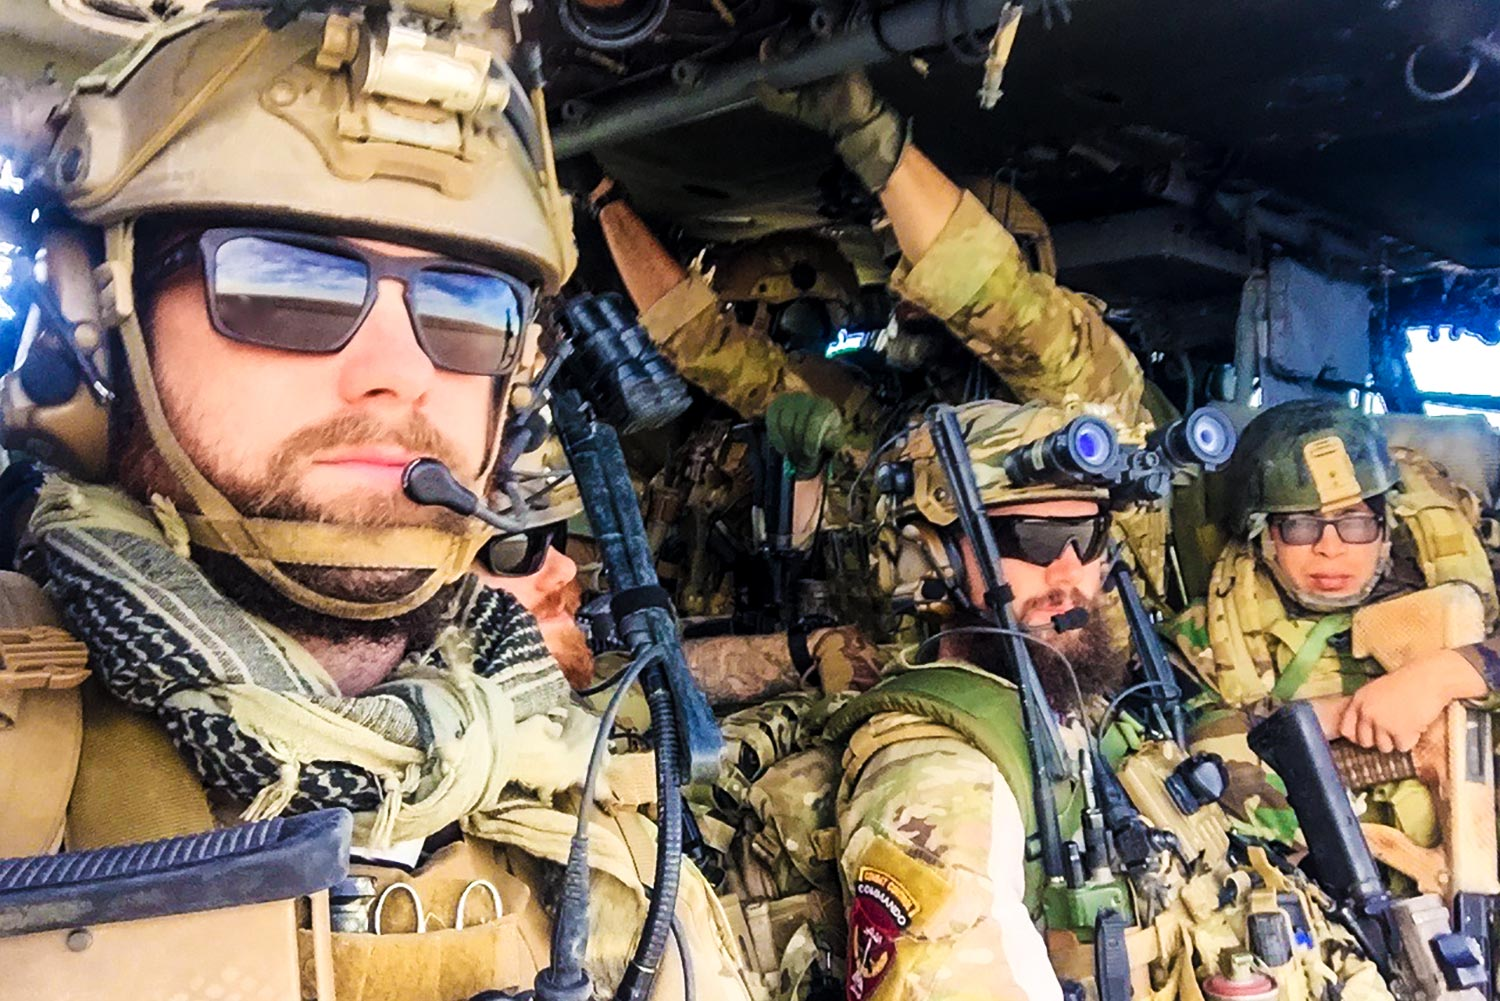 Sargent with his fellow Green Berets in Afghanistan.